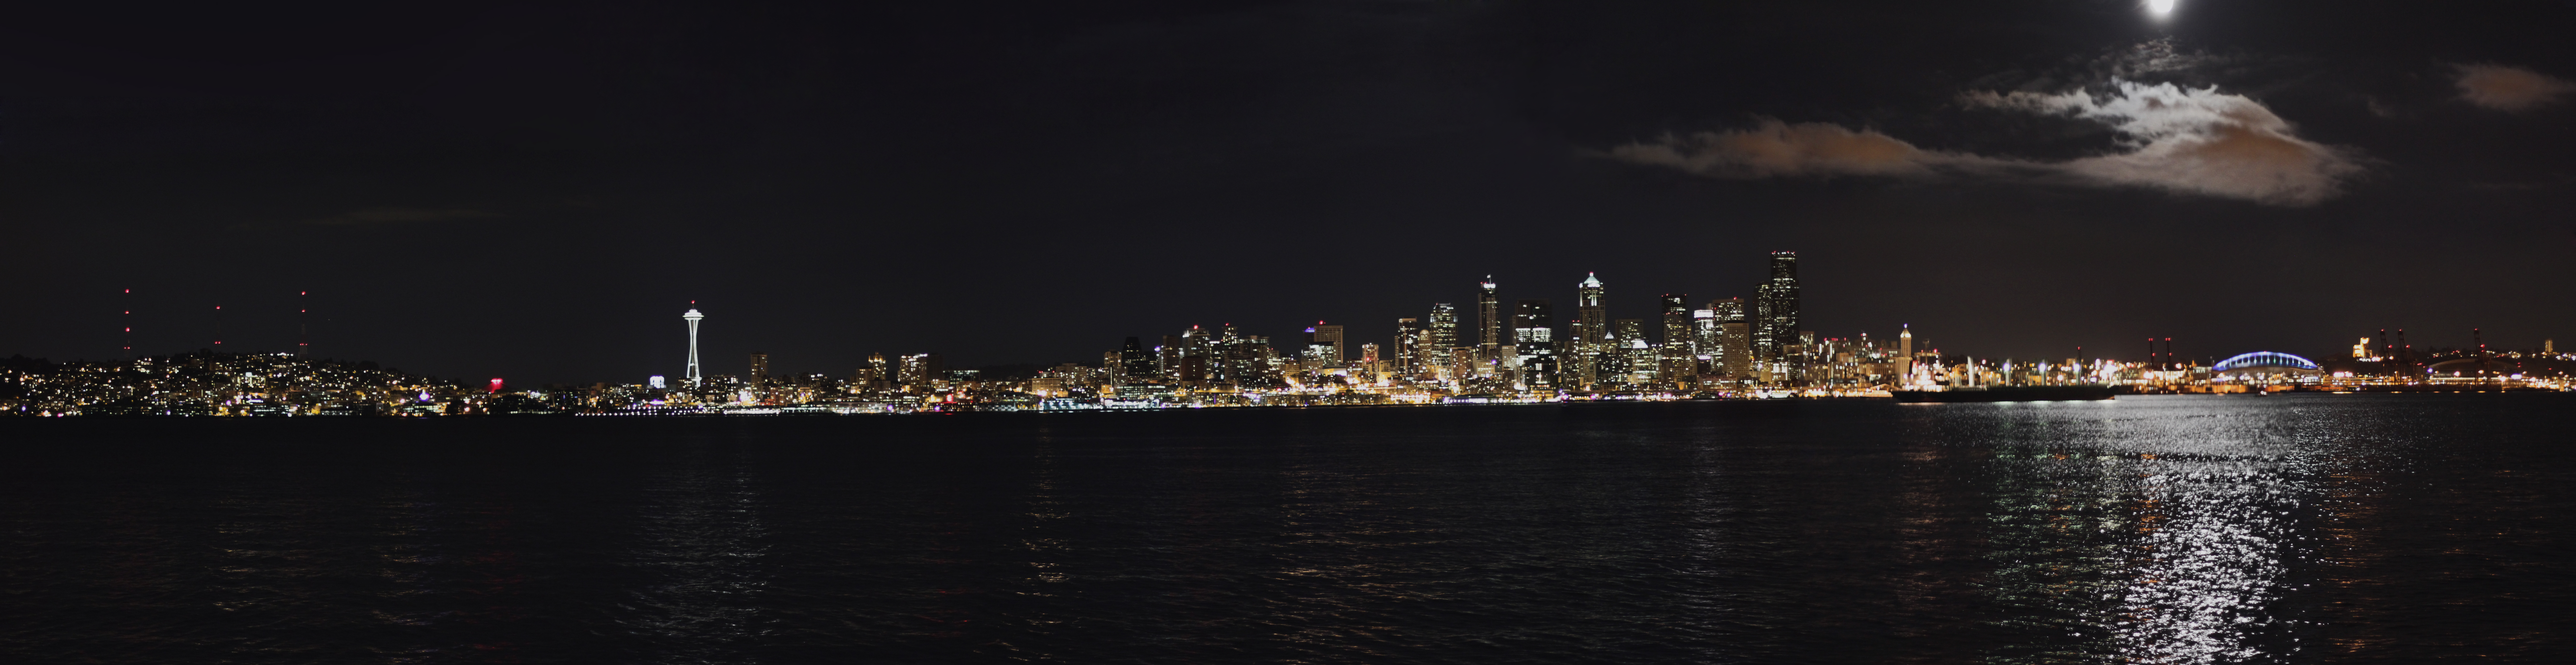 seattle panoramic 1 by photoboy1002001 on deviantart seattle panorama by nirvanajc6 on deviantart 669